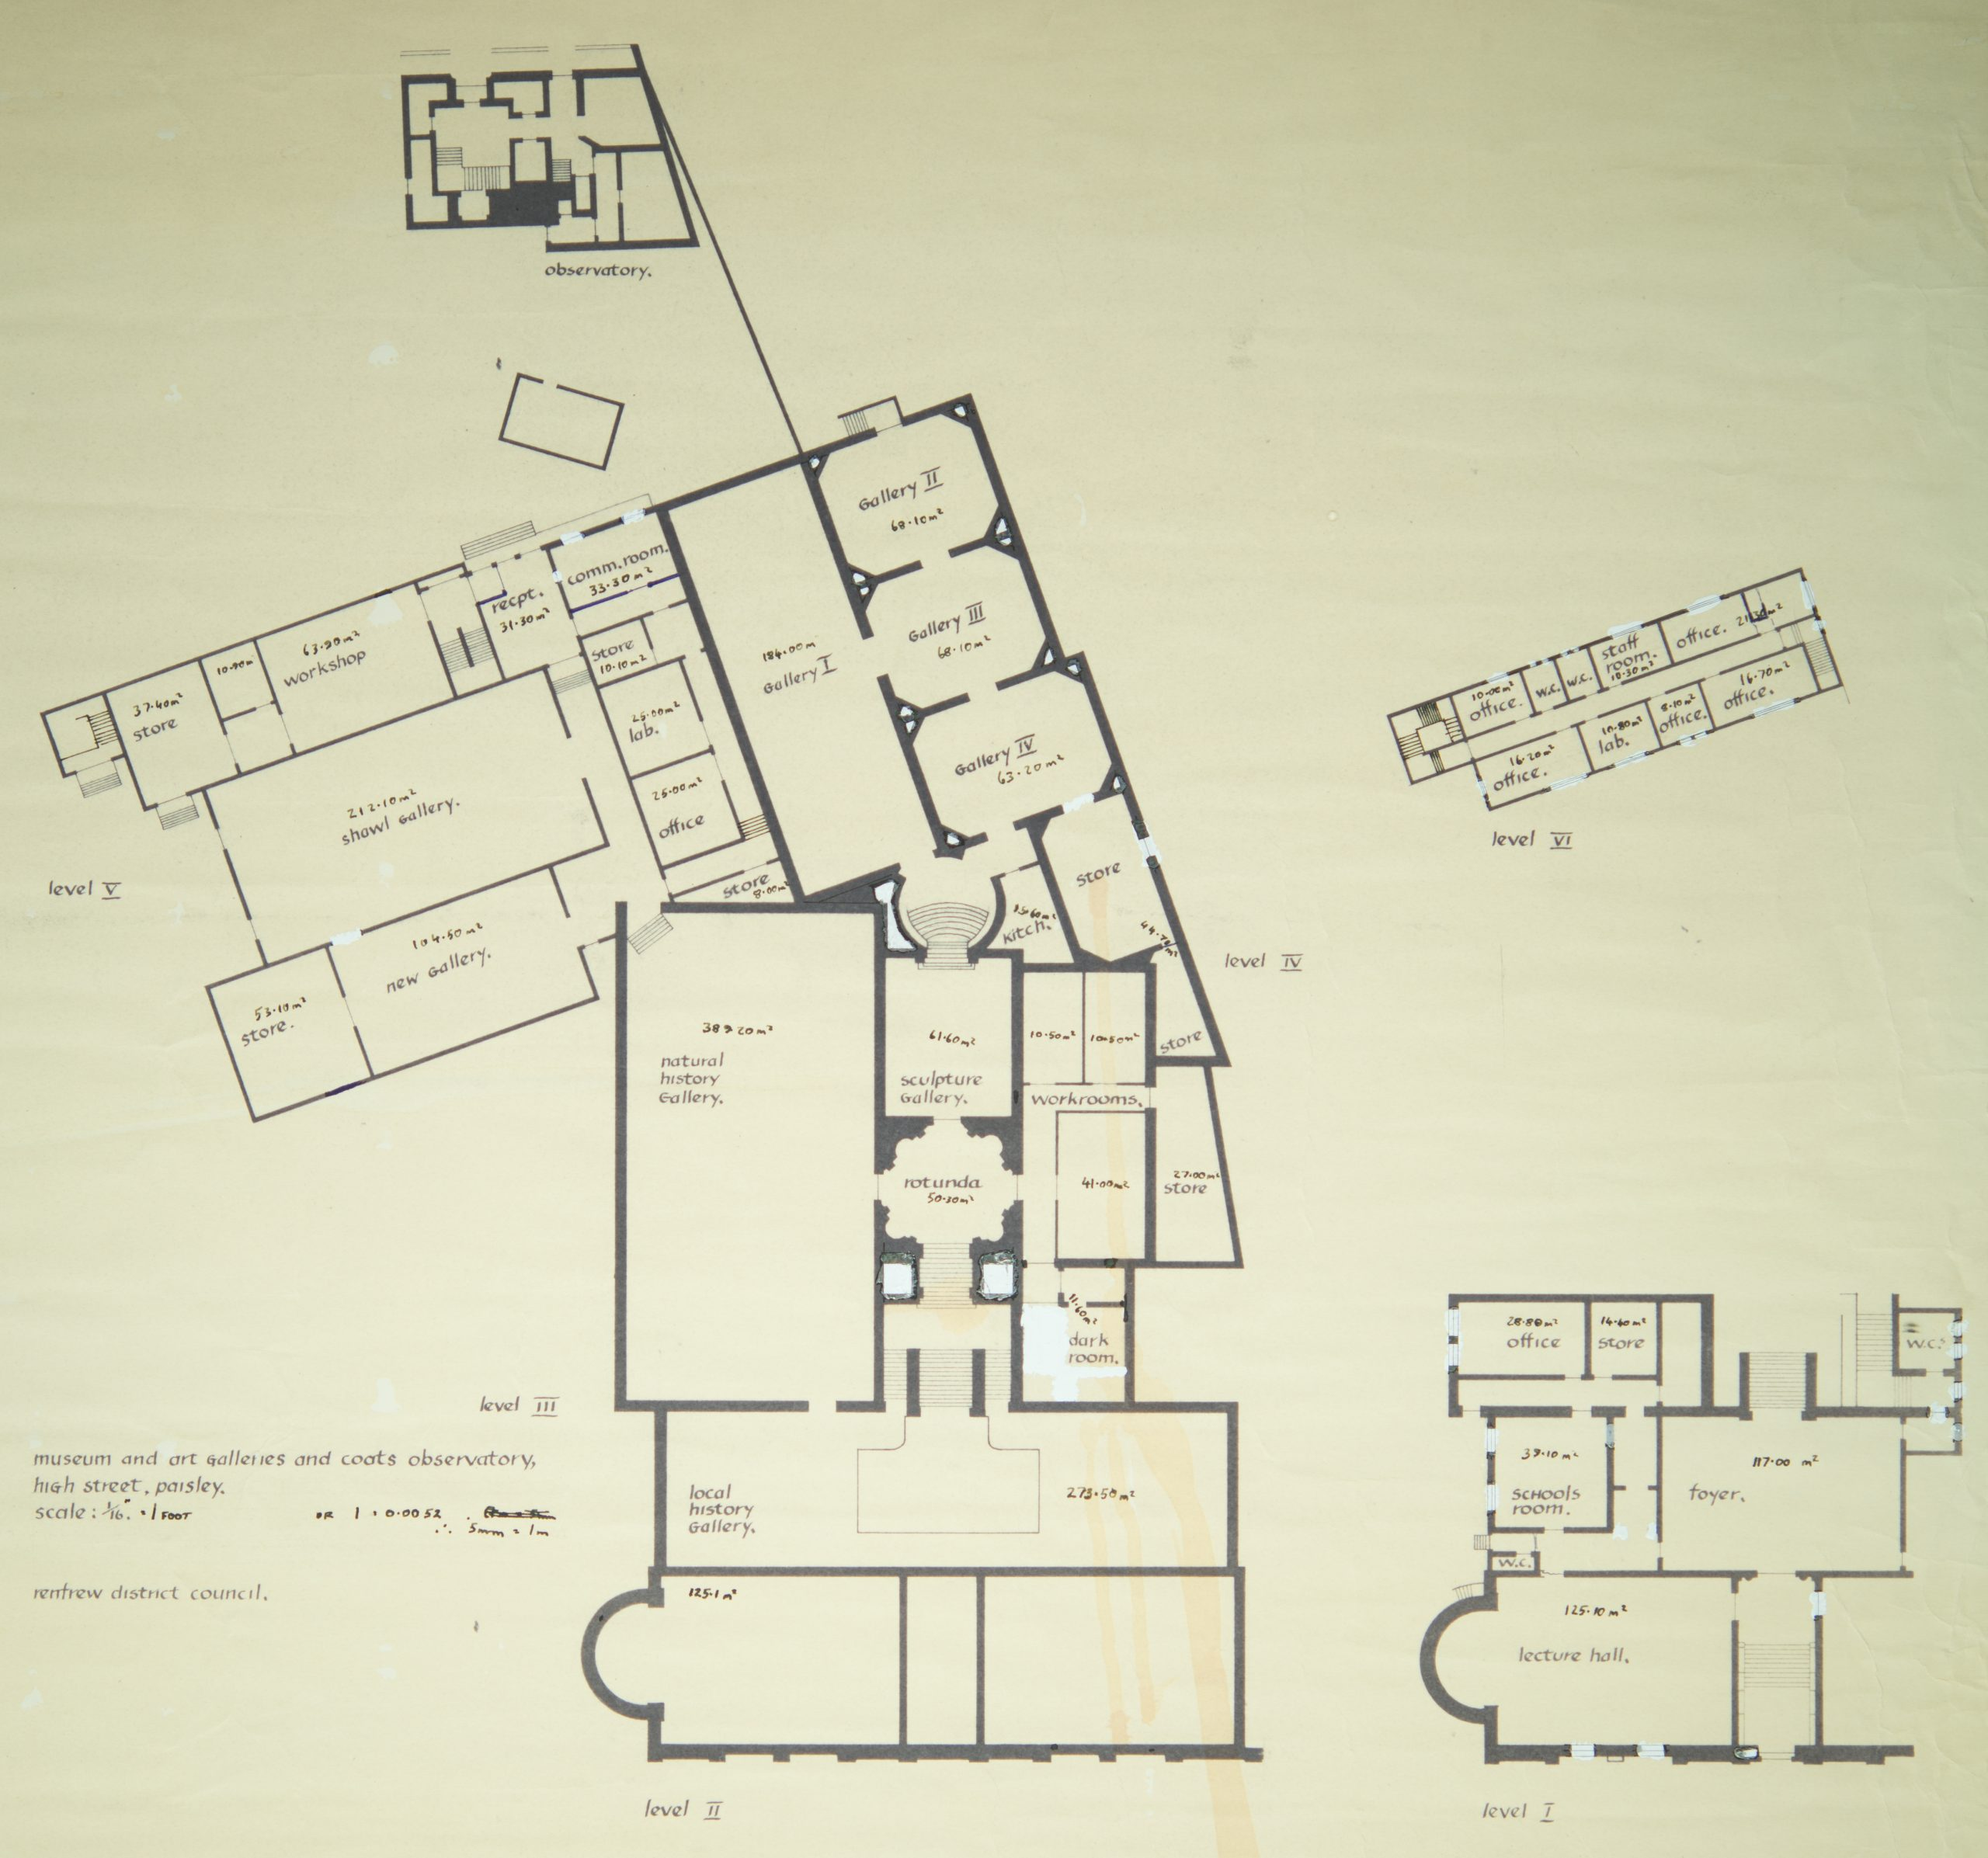 Floor plan of the museum, including the 1970's extension, the Observatory and Transit House